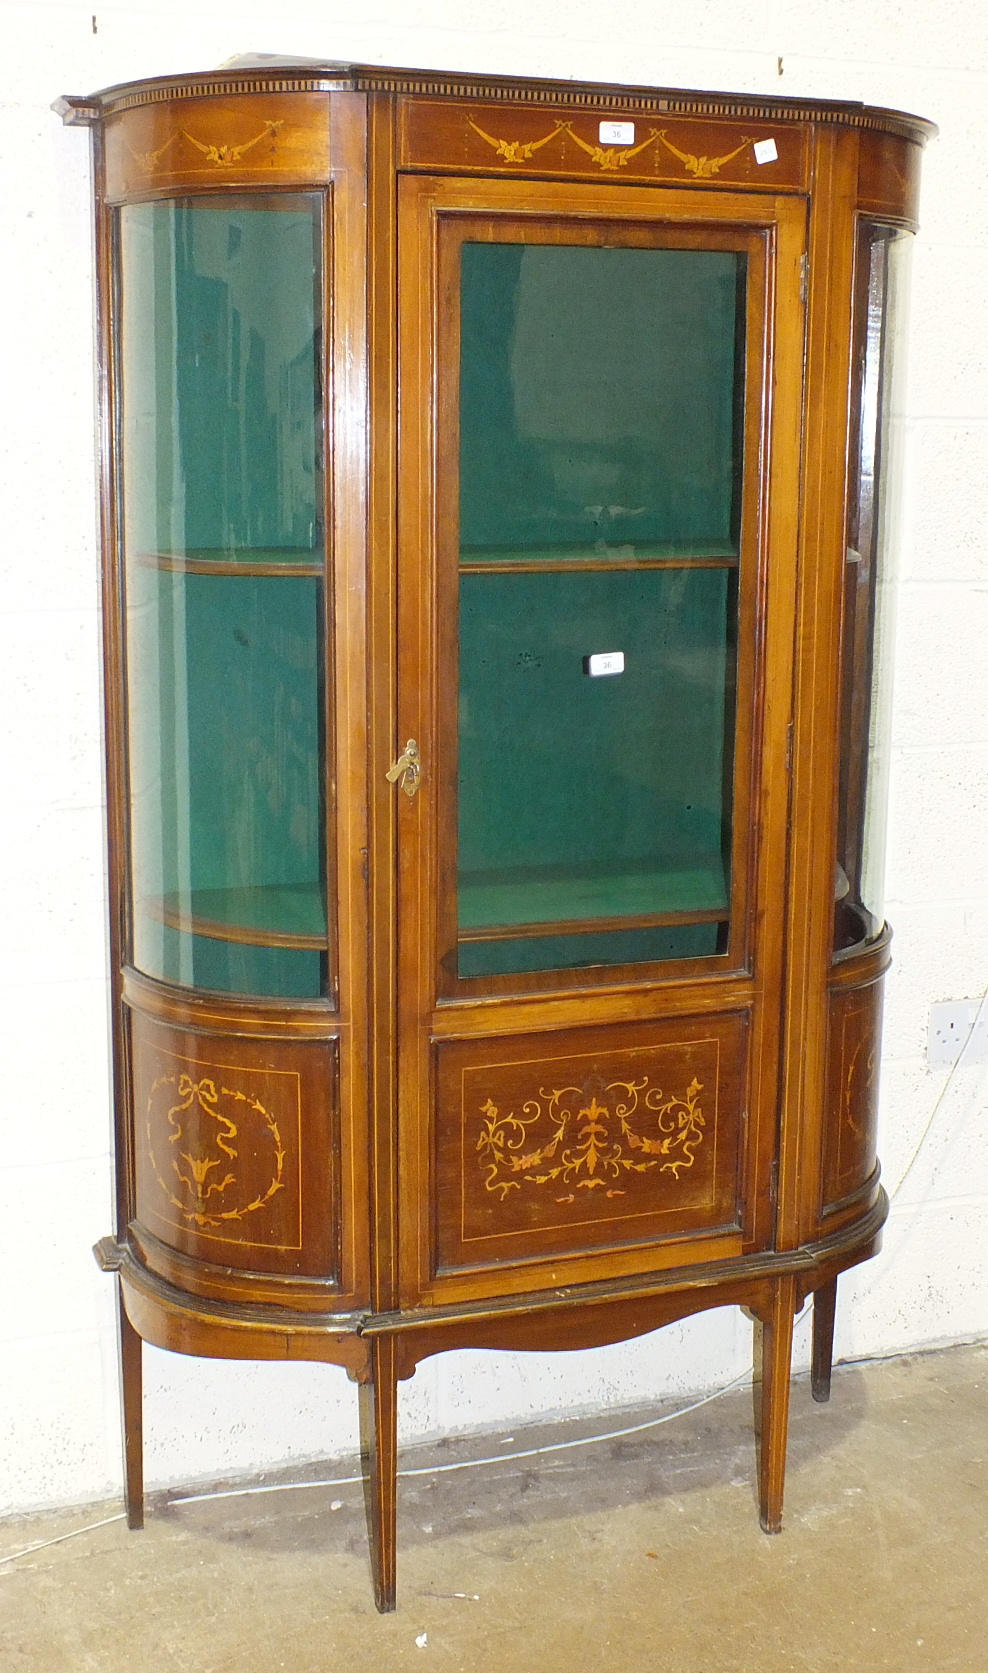 An Edwardian inlaid mahogany display cabinet with bowed glazed sides and door, 106cm wide, 172cm